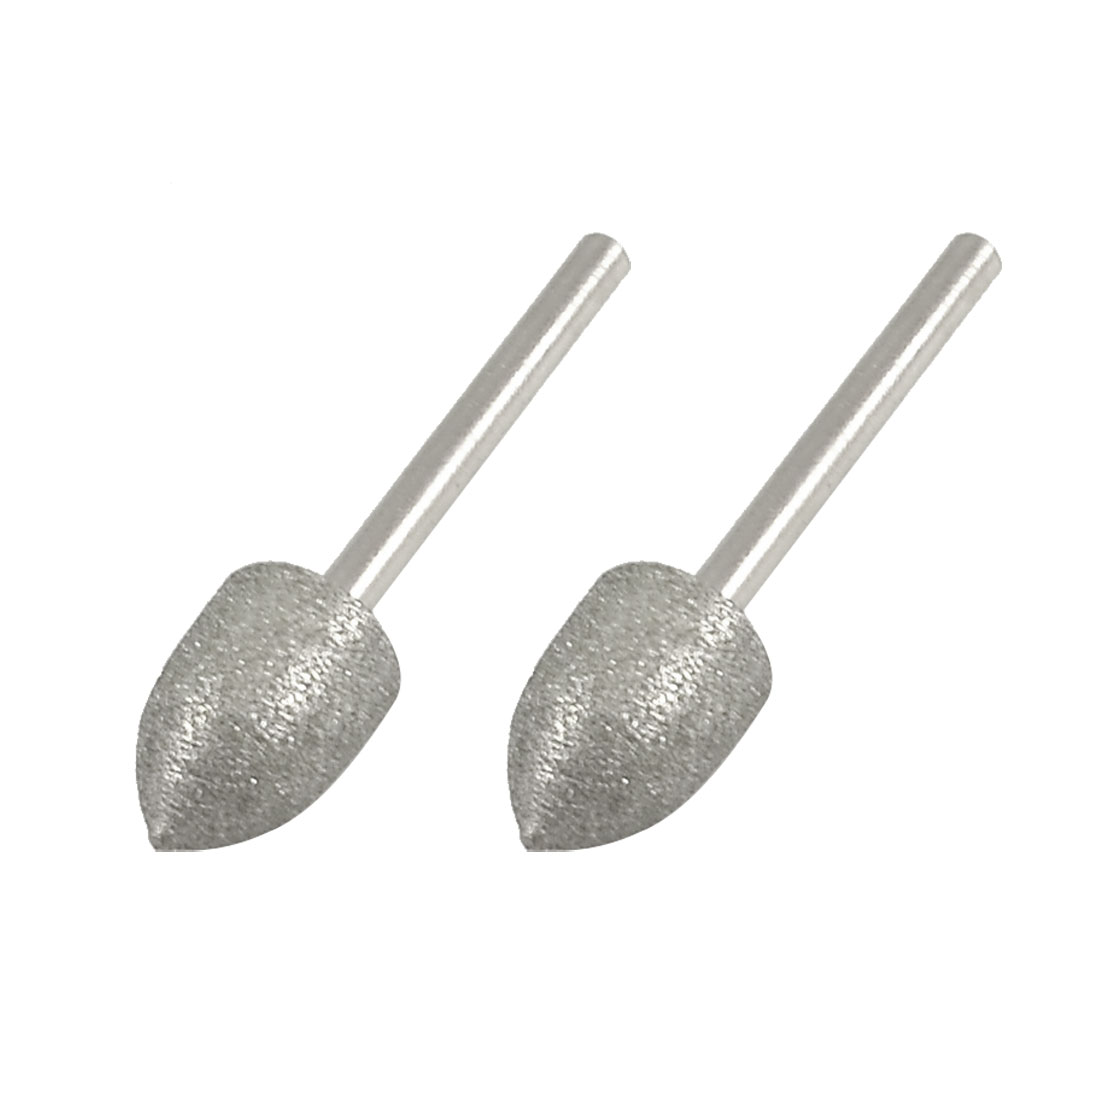 2 Pcs 10mm Tapered Nose 3mm Shank Diamond Mounted Point Grinding Bits